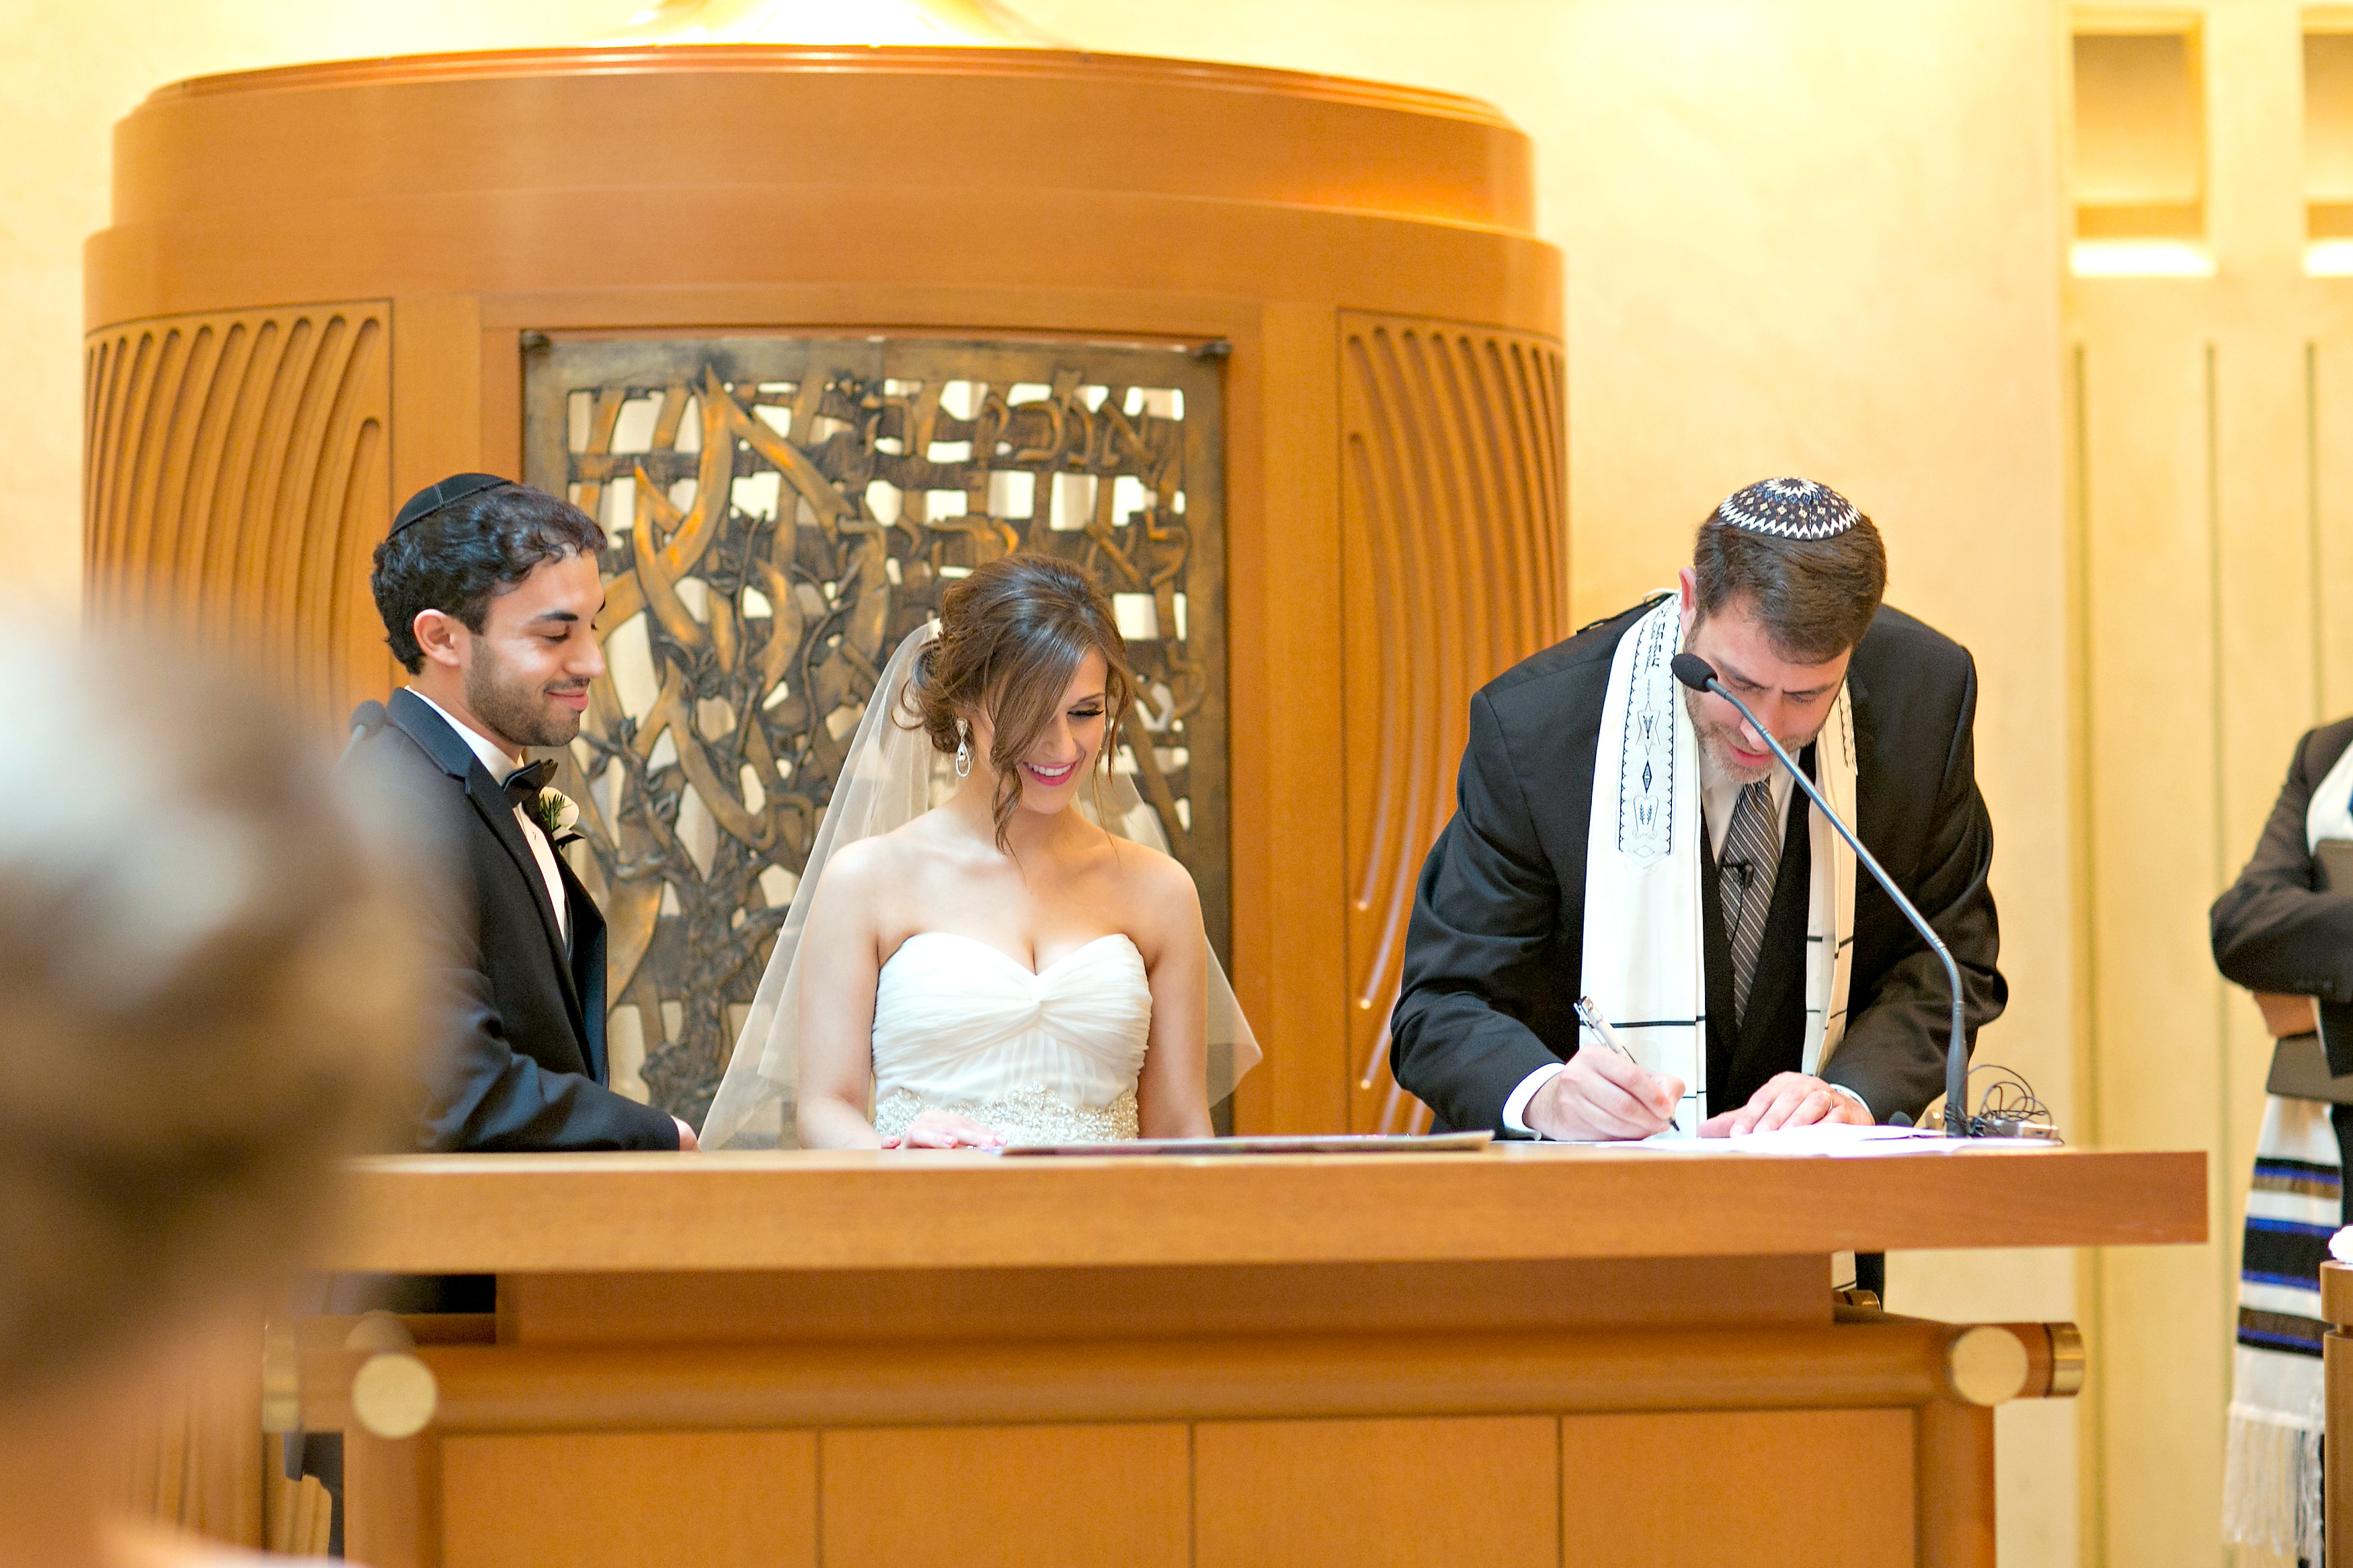 Jewish tradition of Signing Ketubah at wedding The Temple in Atlanta